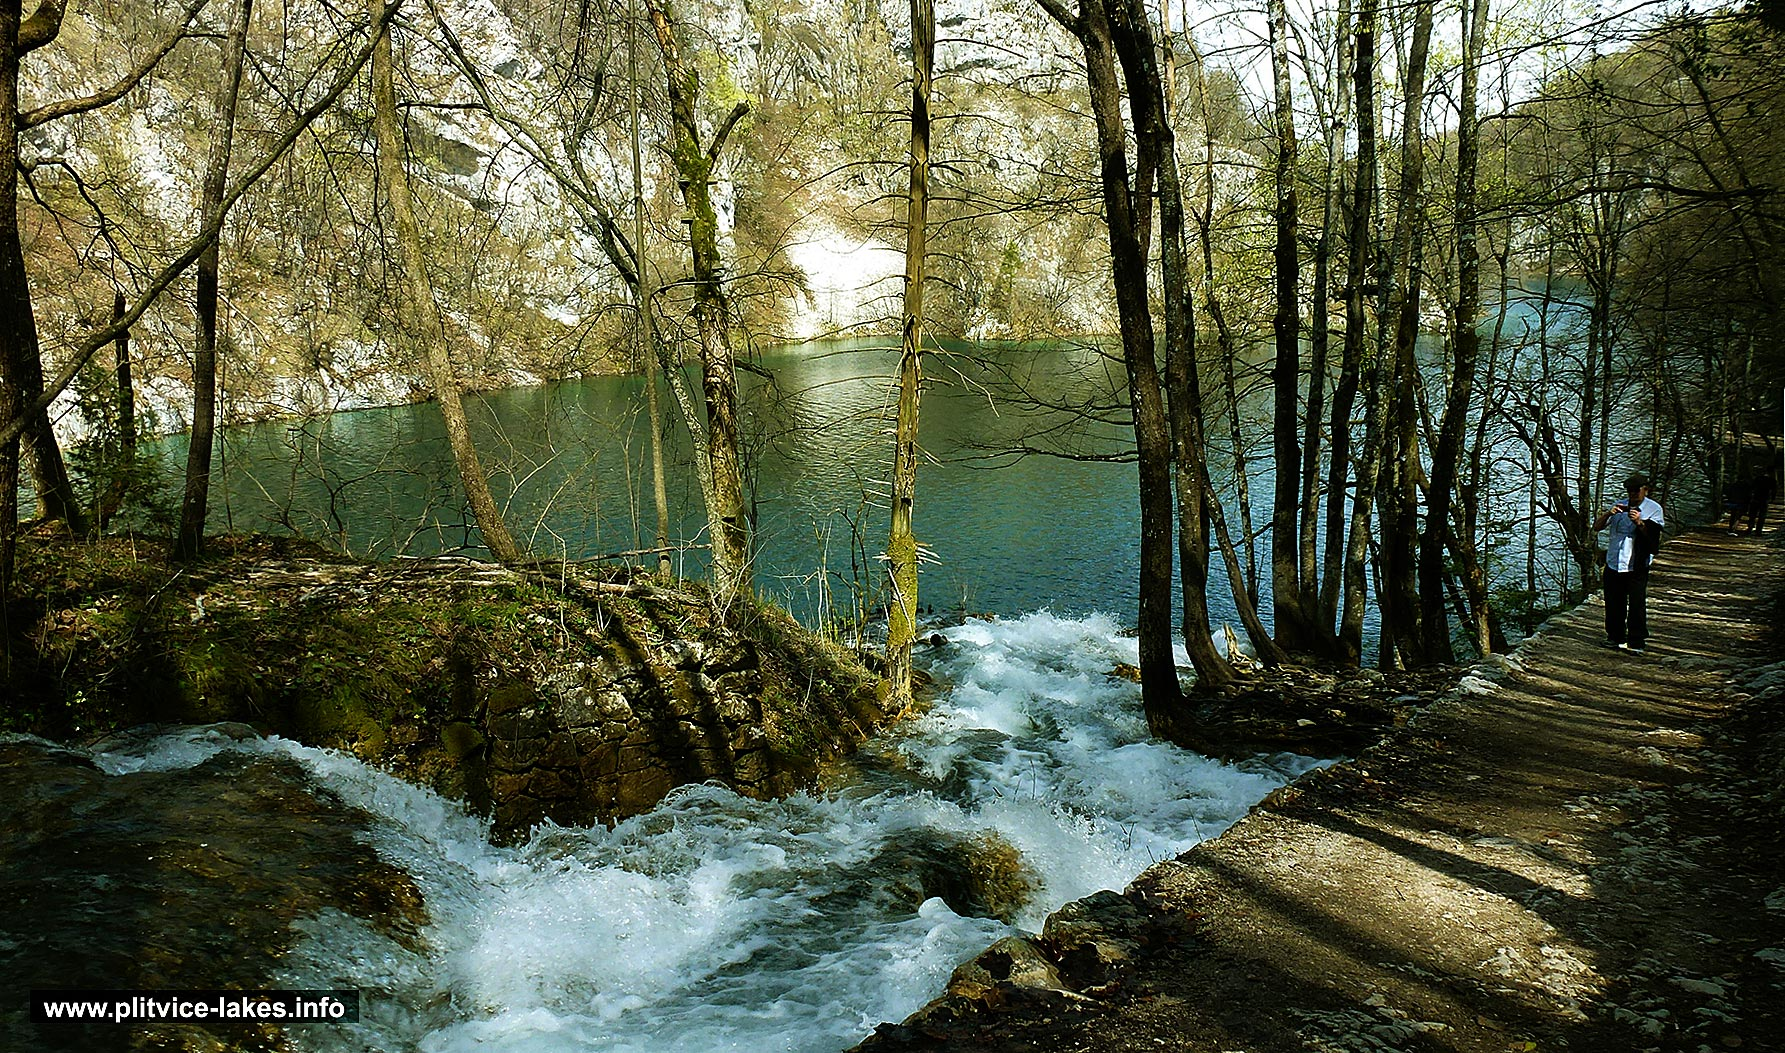 Walking Along the Lake, Plitvice Lakes - Spring 2015